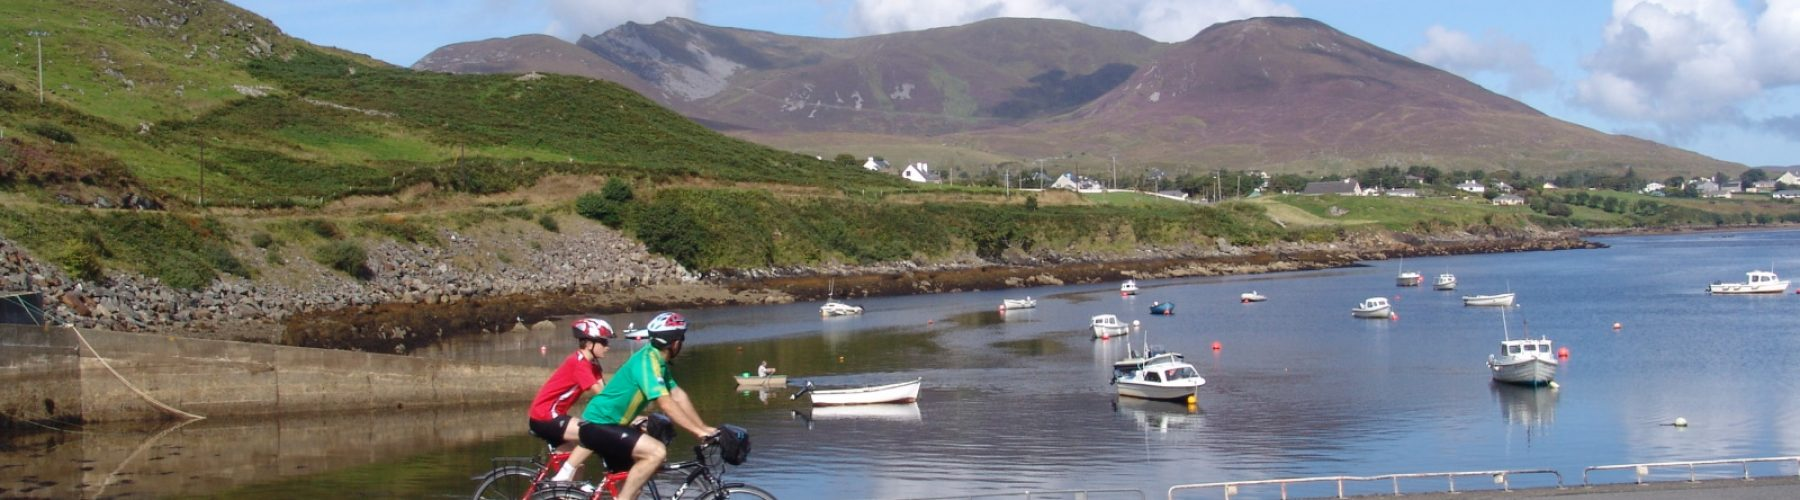 Cycling at Teelin Pier, Donegal